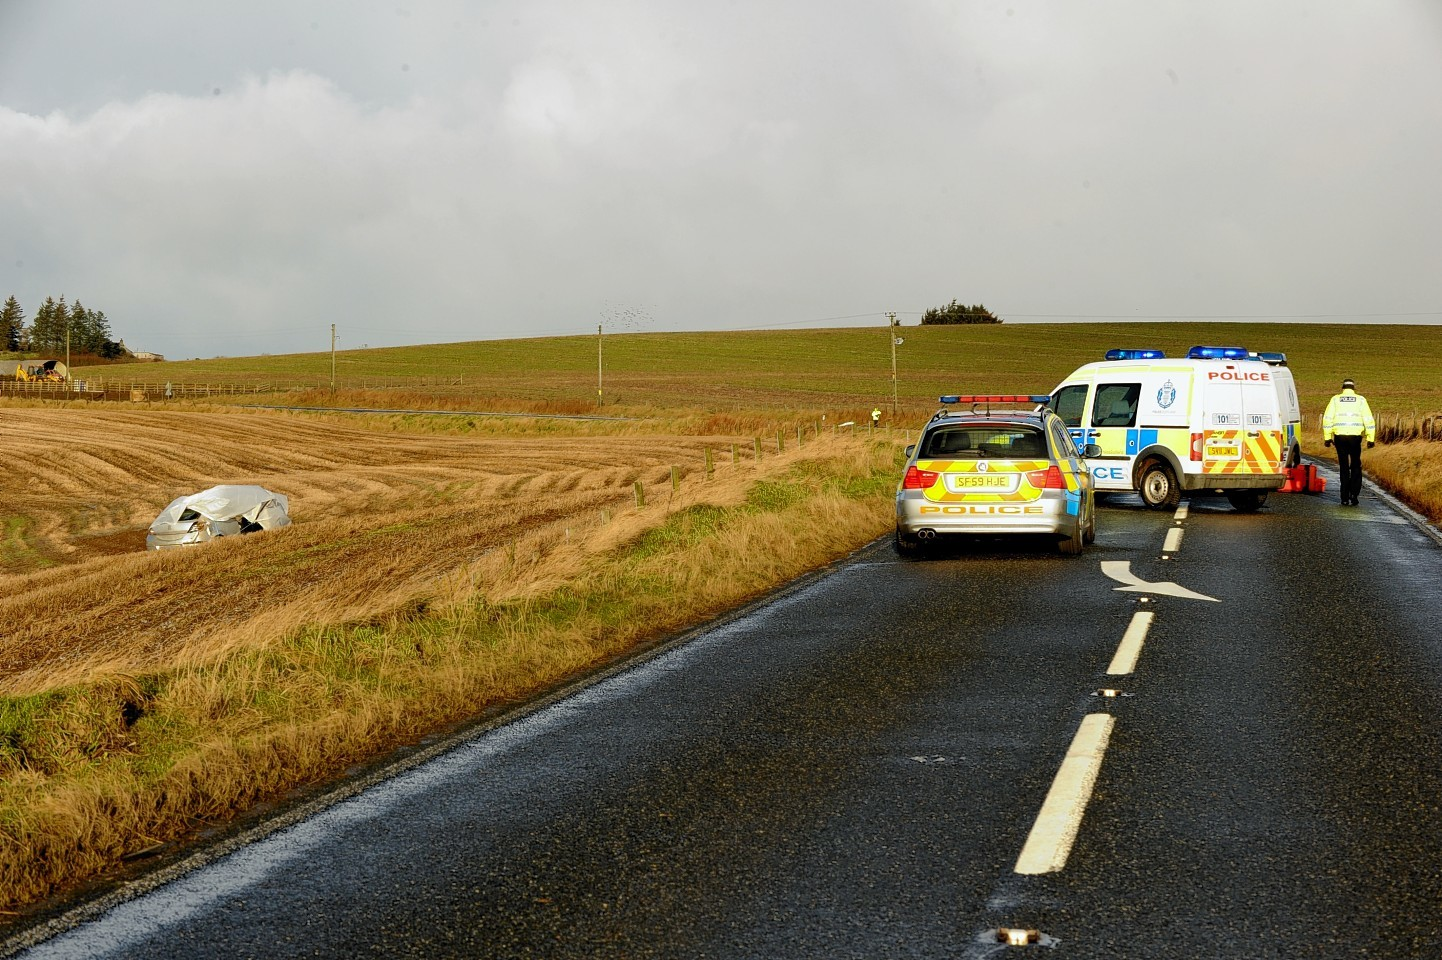 The road was closed after the death of a 23-year-old man